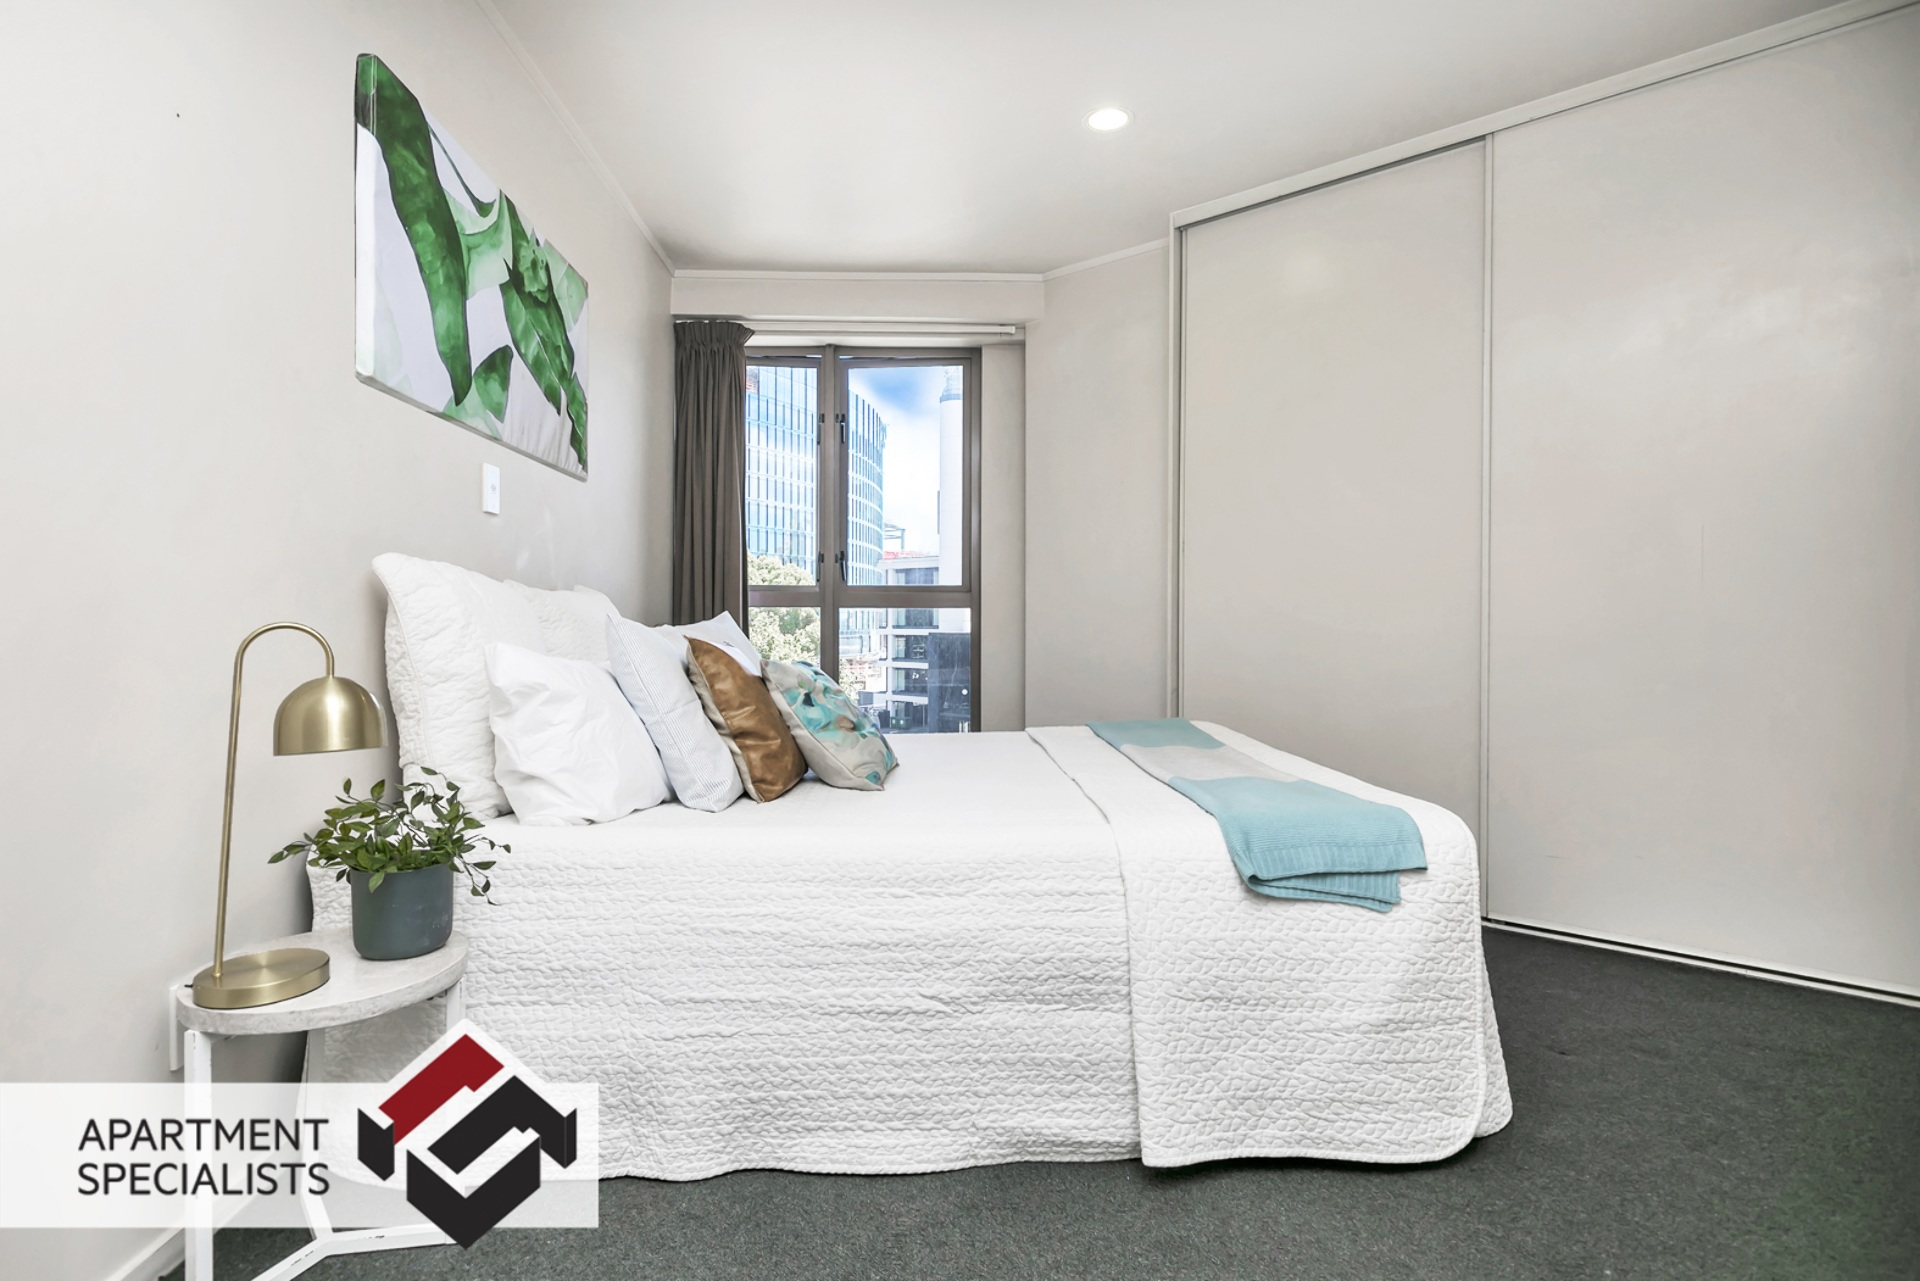 6 | 89 Victoria Street West, City Centre | Apartment Specialists